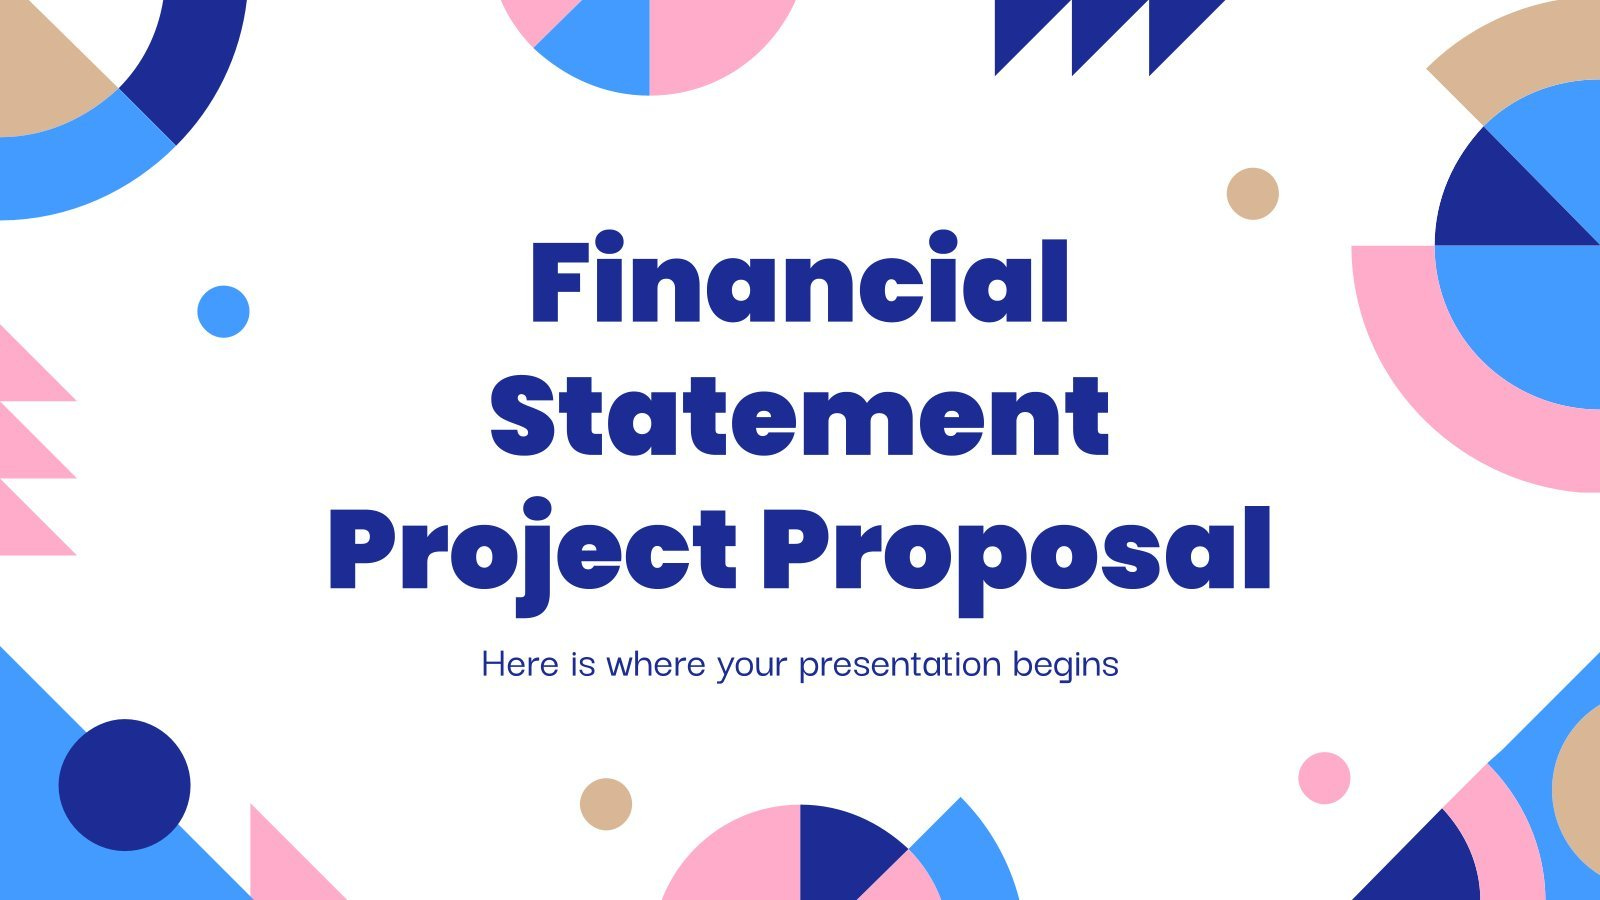 Financial Statement Project Proposal presentation template